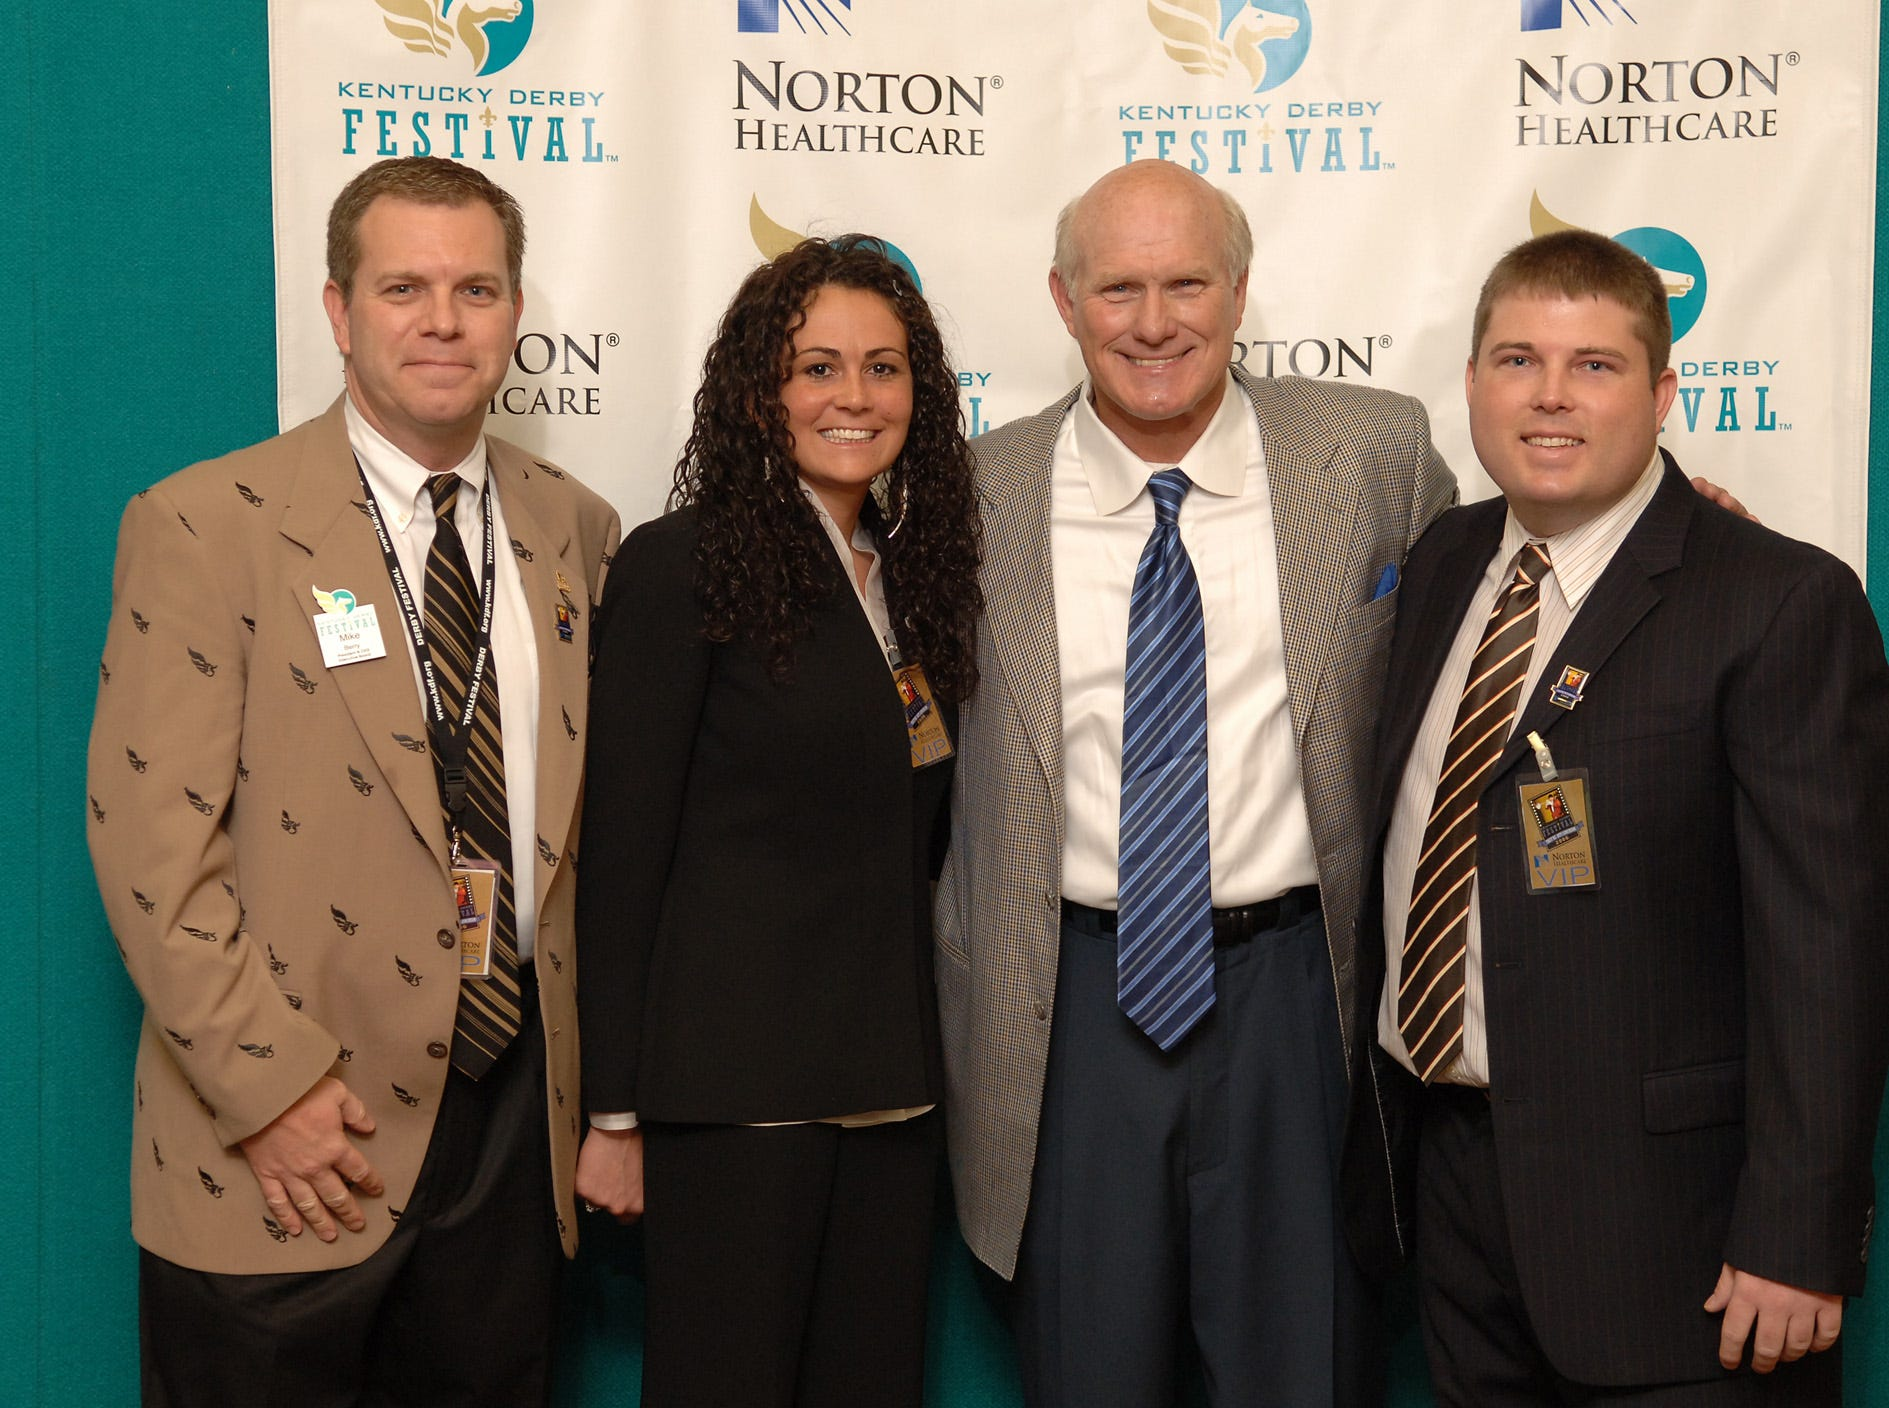 Mike Berry, president and CEO of the Kentucky Derby Festival, in a group photo with Terry Bradshaw in May 2005.